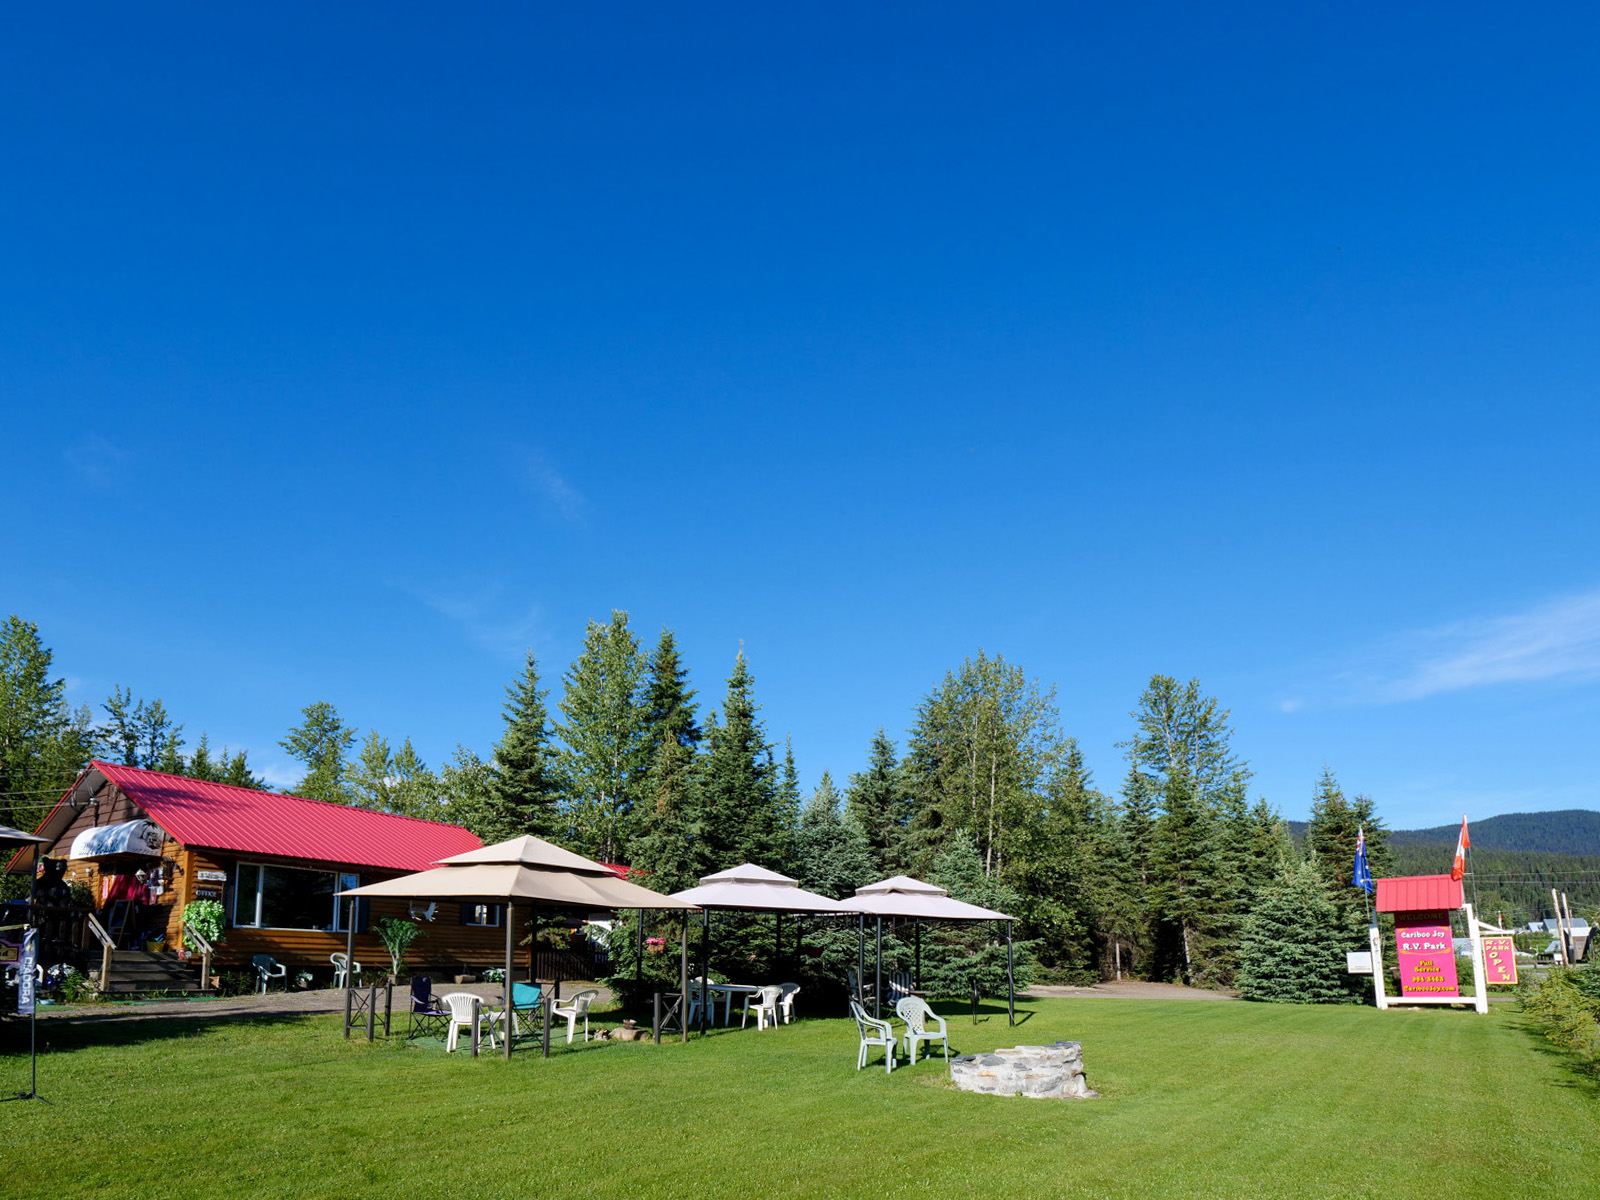 Cariboo joy rv park 04